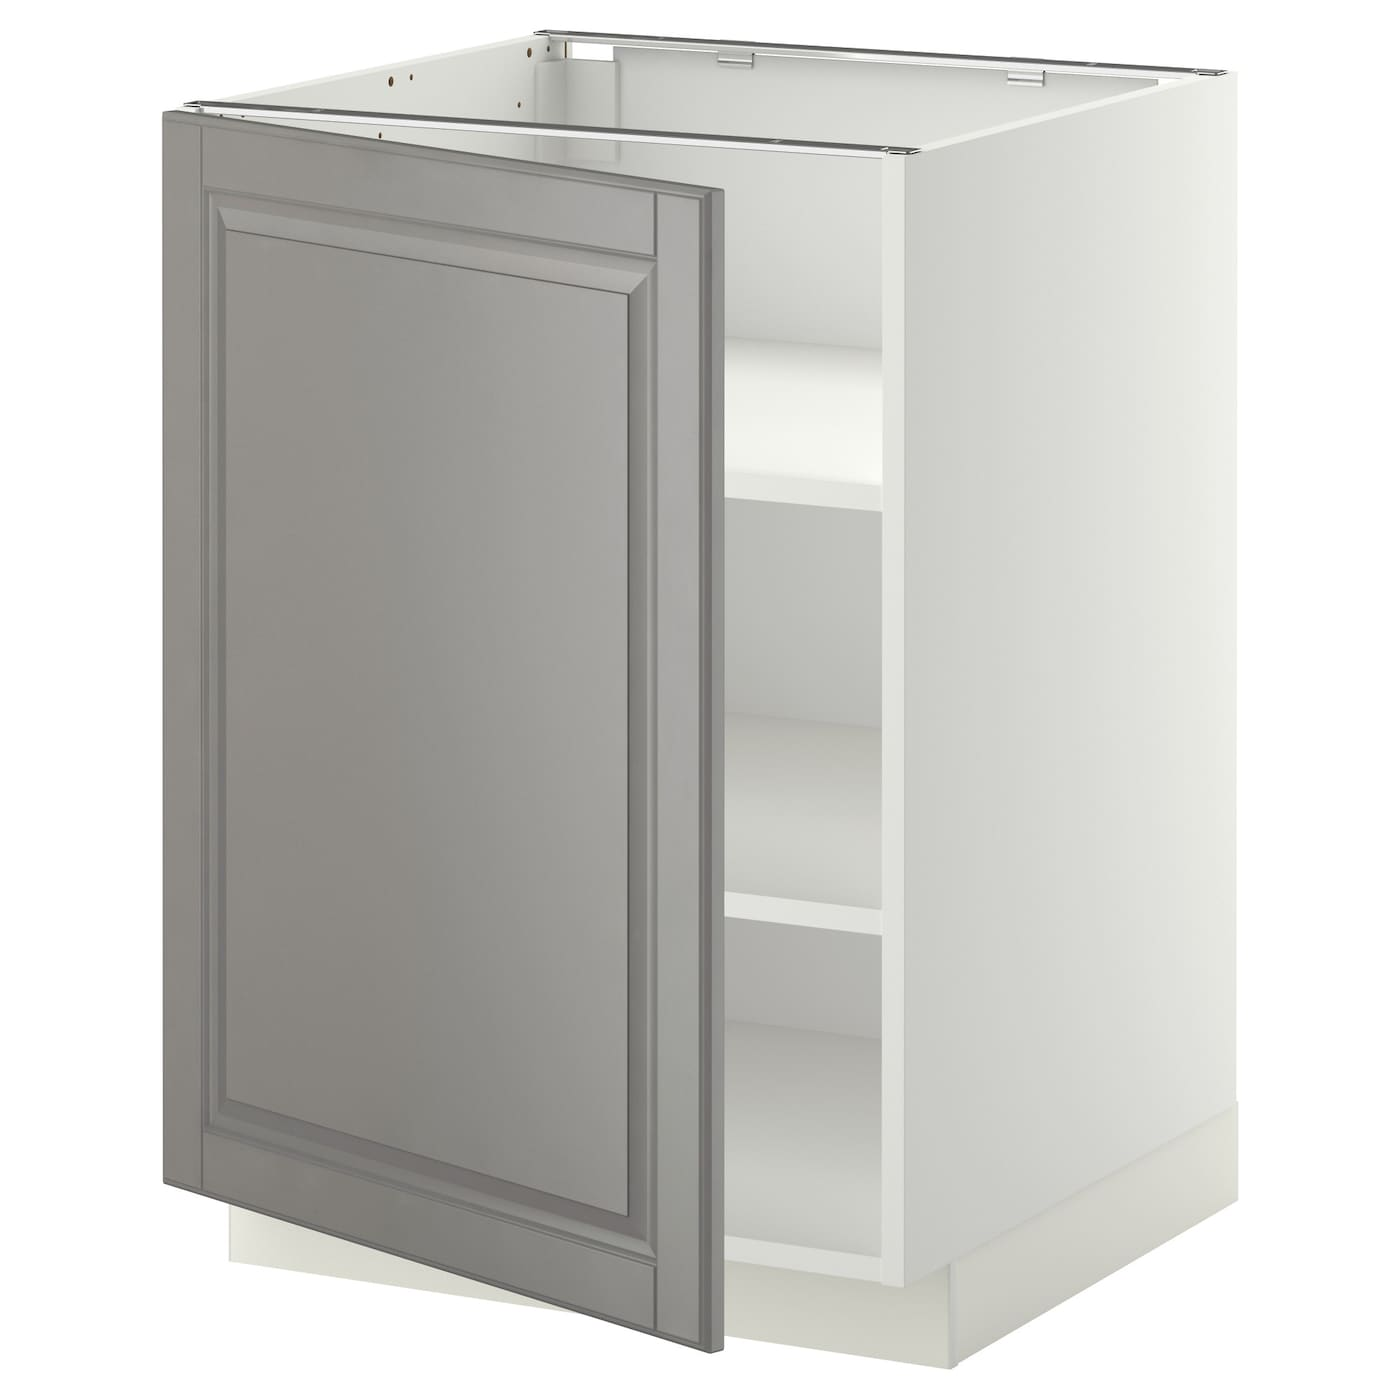 ikea white bathroom cabinet metod base cabinet with shelves white bodbyn grey 60 x 60 17760